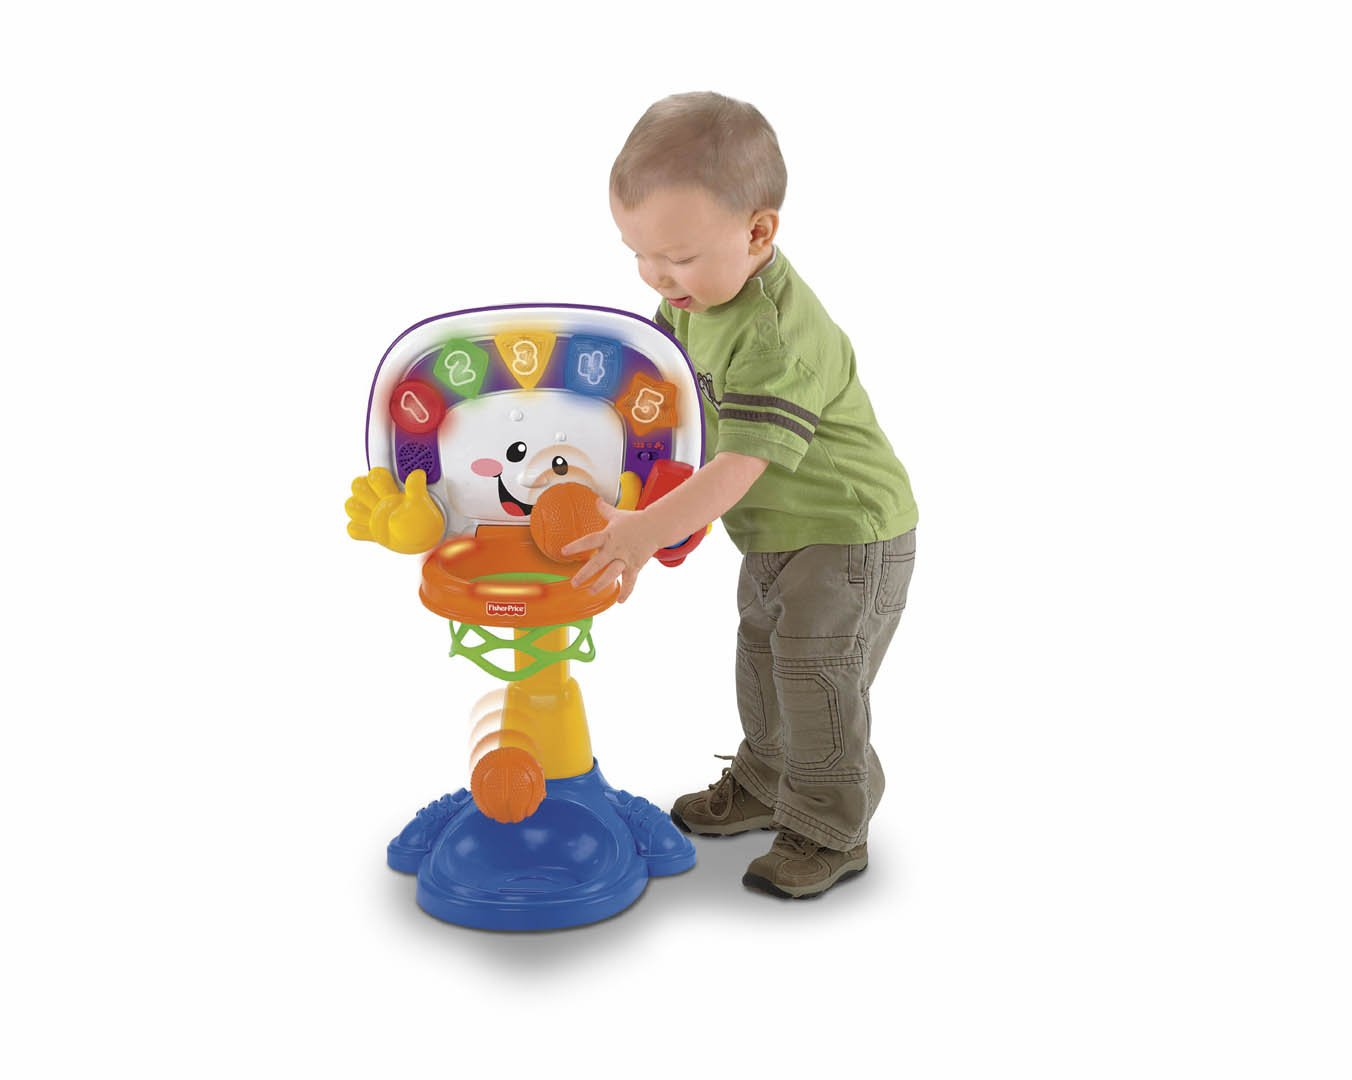 Amazon.com: Fisher-Price Laugh & Learn Basketball: Toys & Games